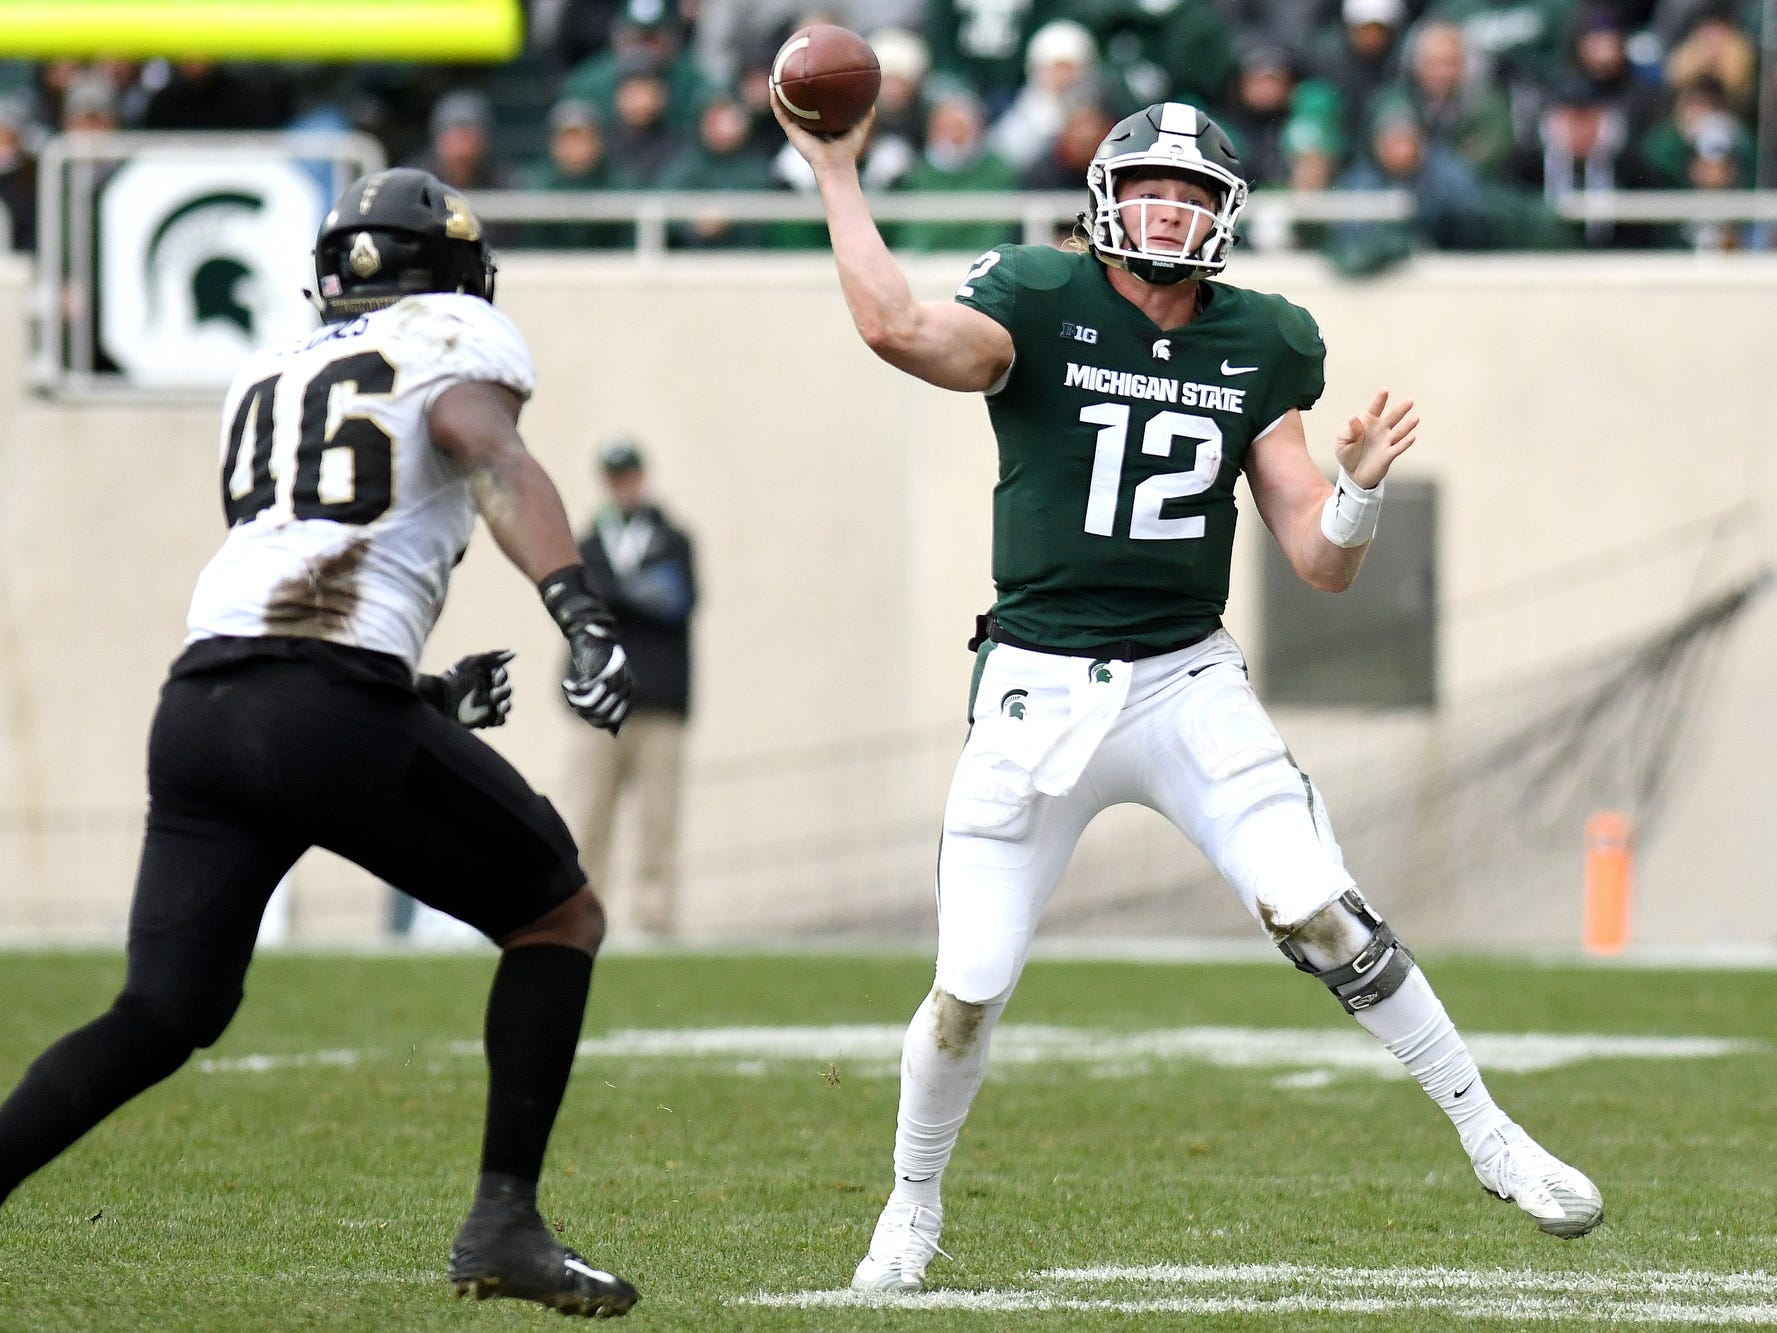 Michigan State's Rocky Lombardi, right, throws the ball as Purdue's Cornel Jones closes in during the third quarter on Saturday, Oct. 27, 2018, at Spartan Stadium in East Lansing.